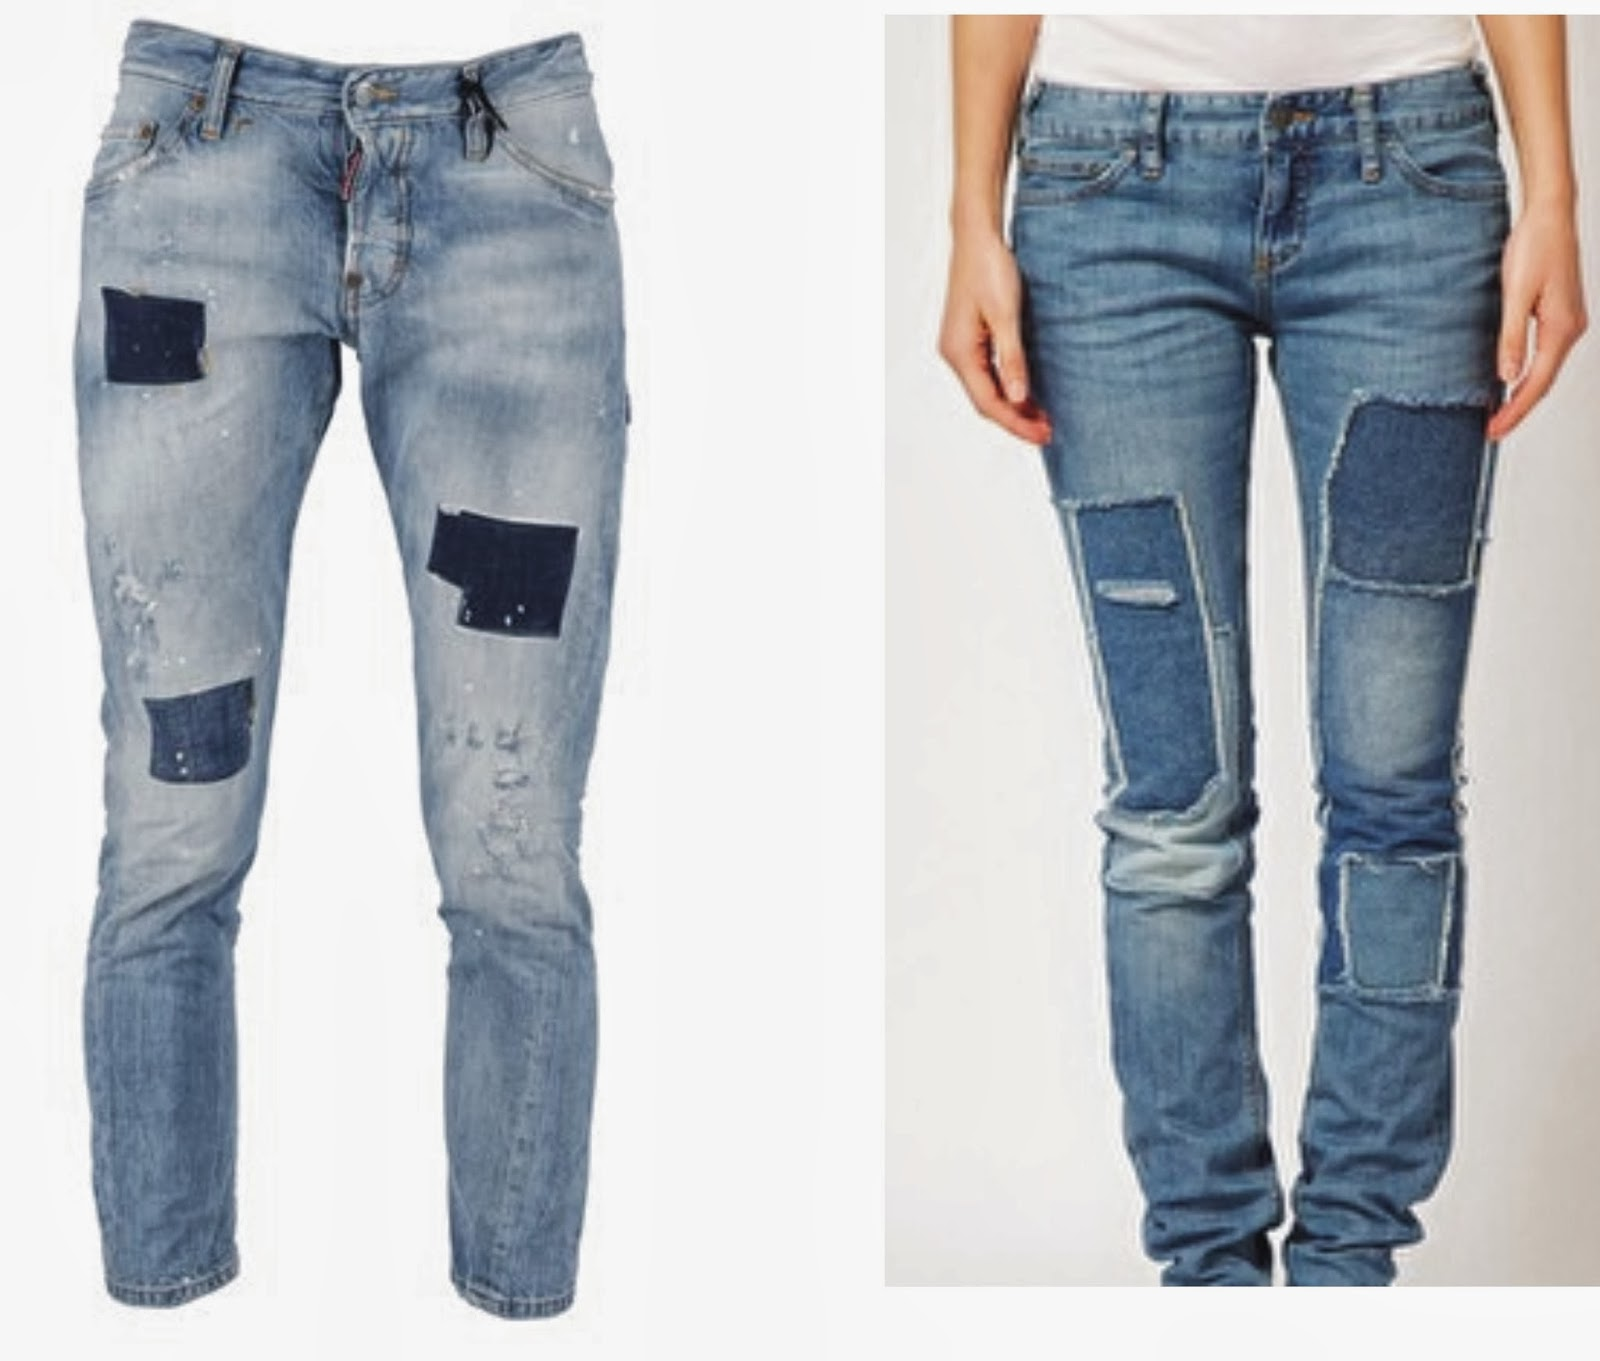 finest selection 74630 94912 grandi toppe per jeans // dersrefunkay.gq